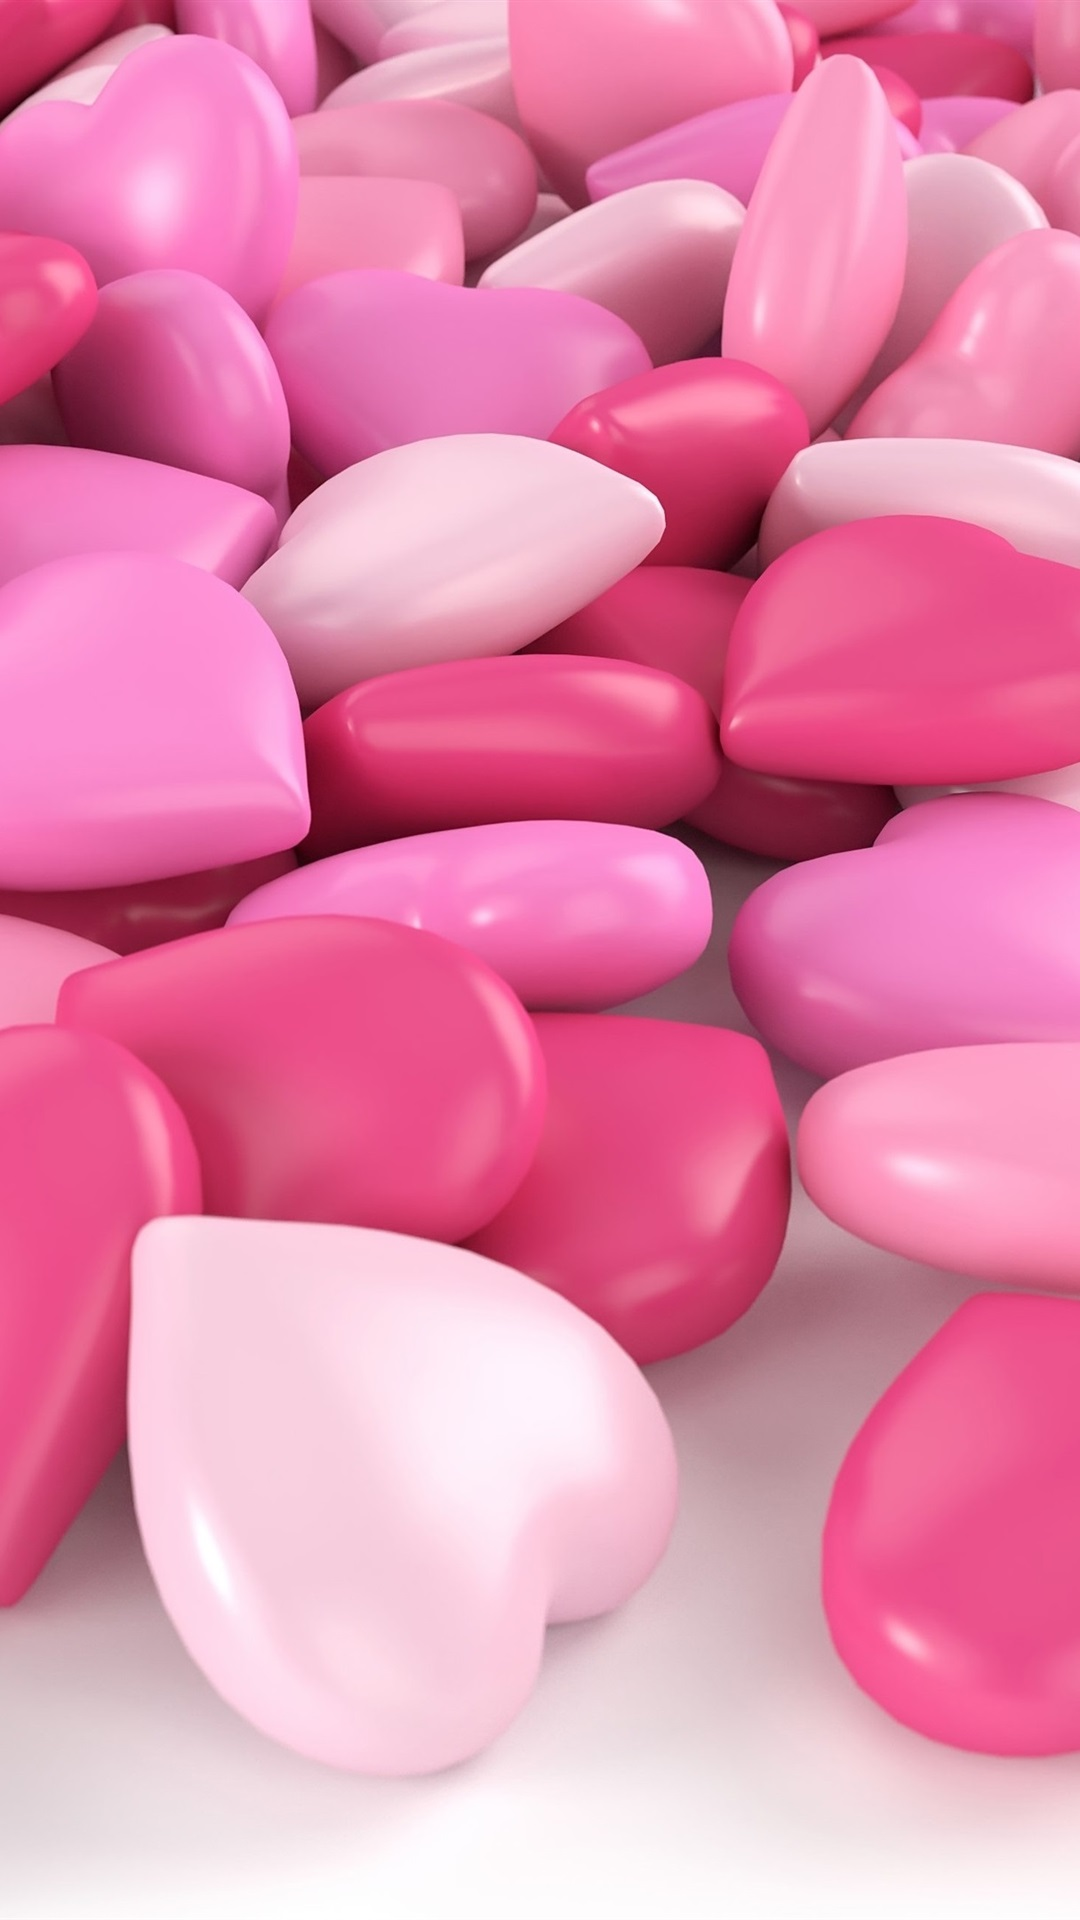 Pink Love Heart Candy 1080x1920 Iphone 8 7 6 6s Plus Wallpaper Background Picture Image